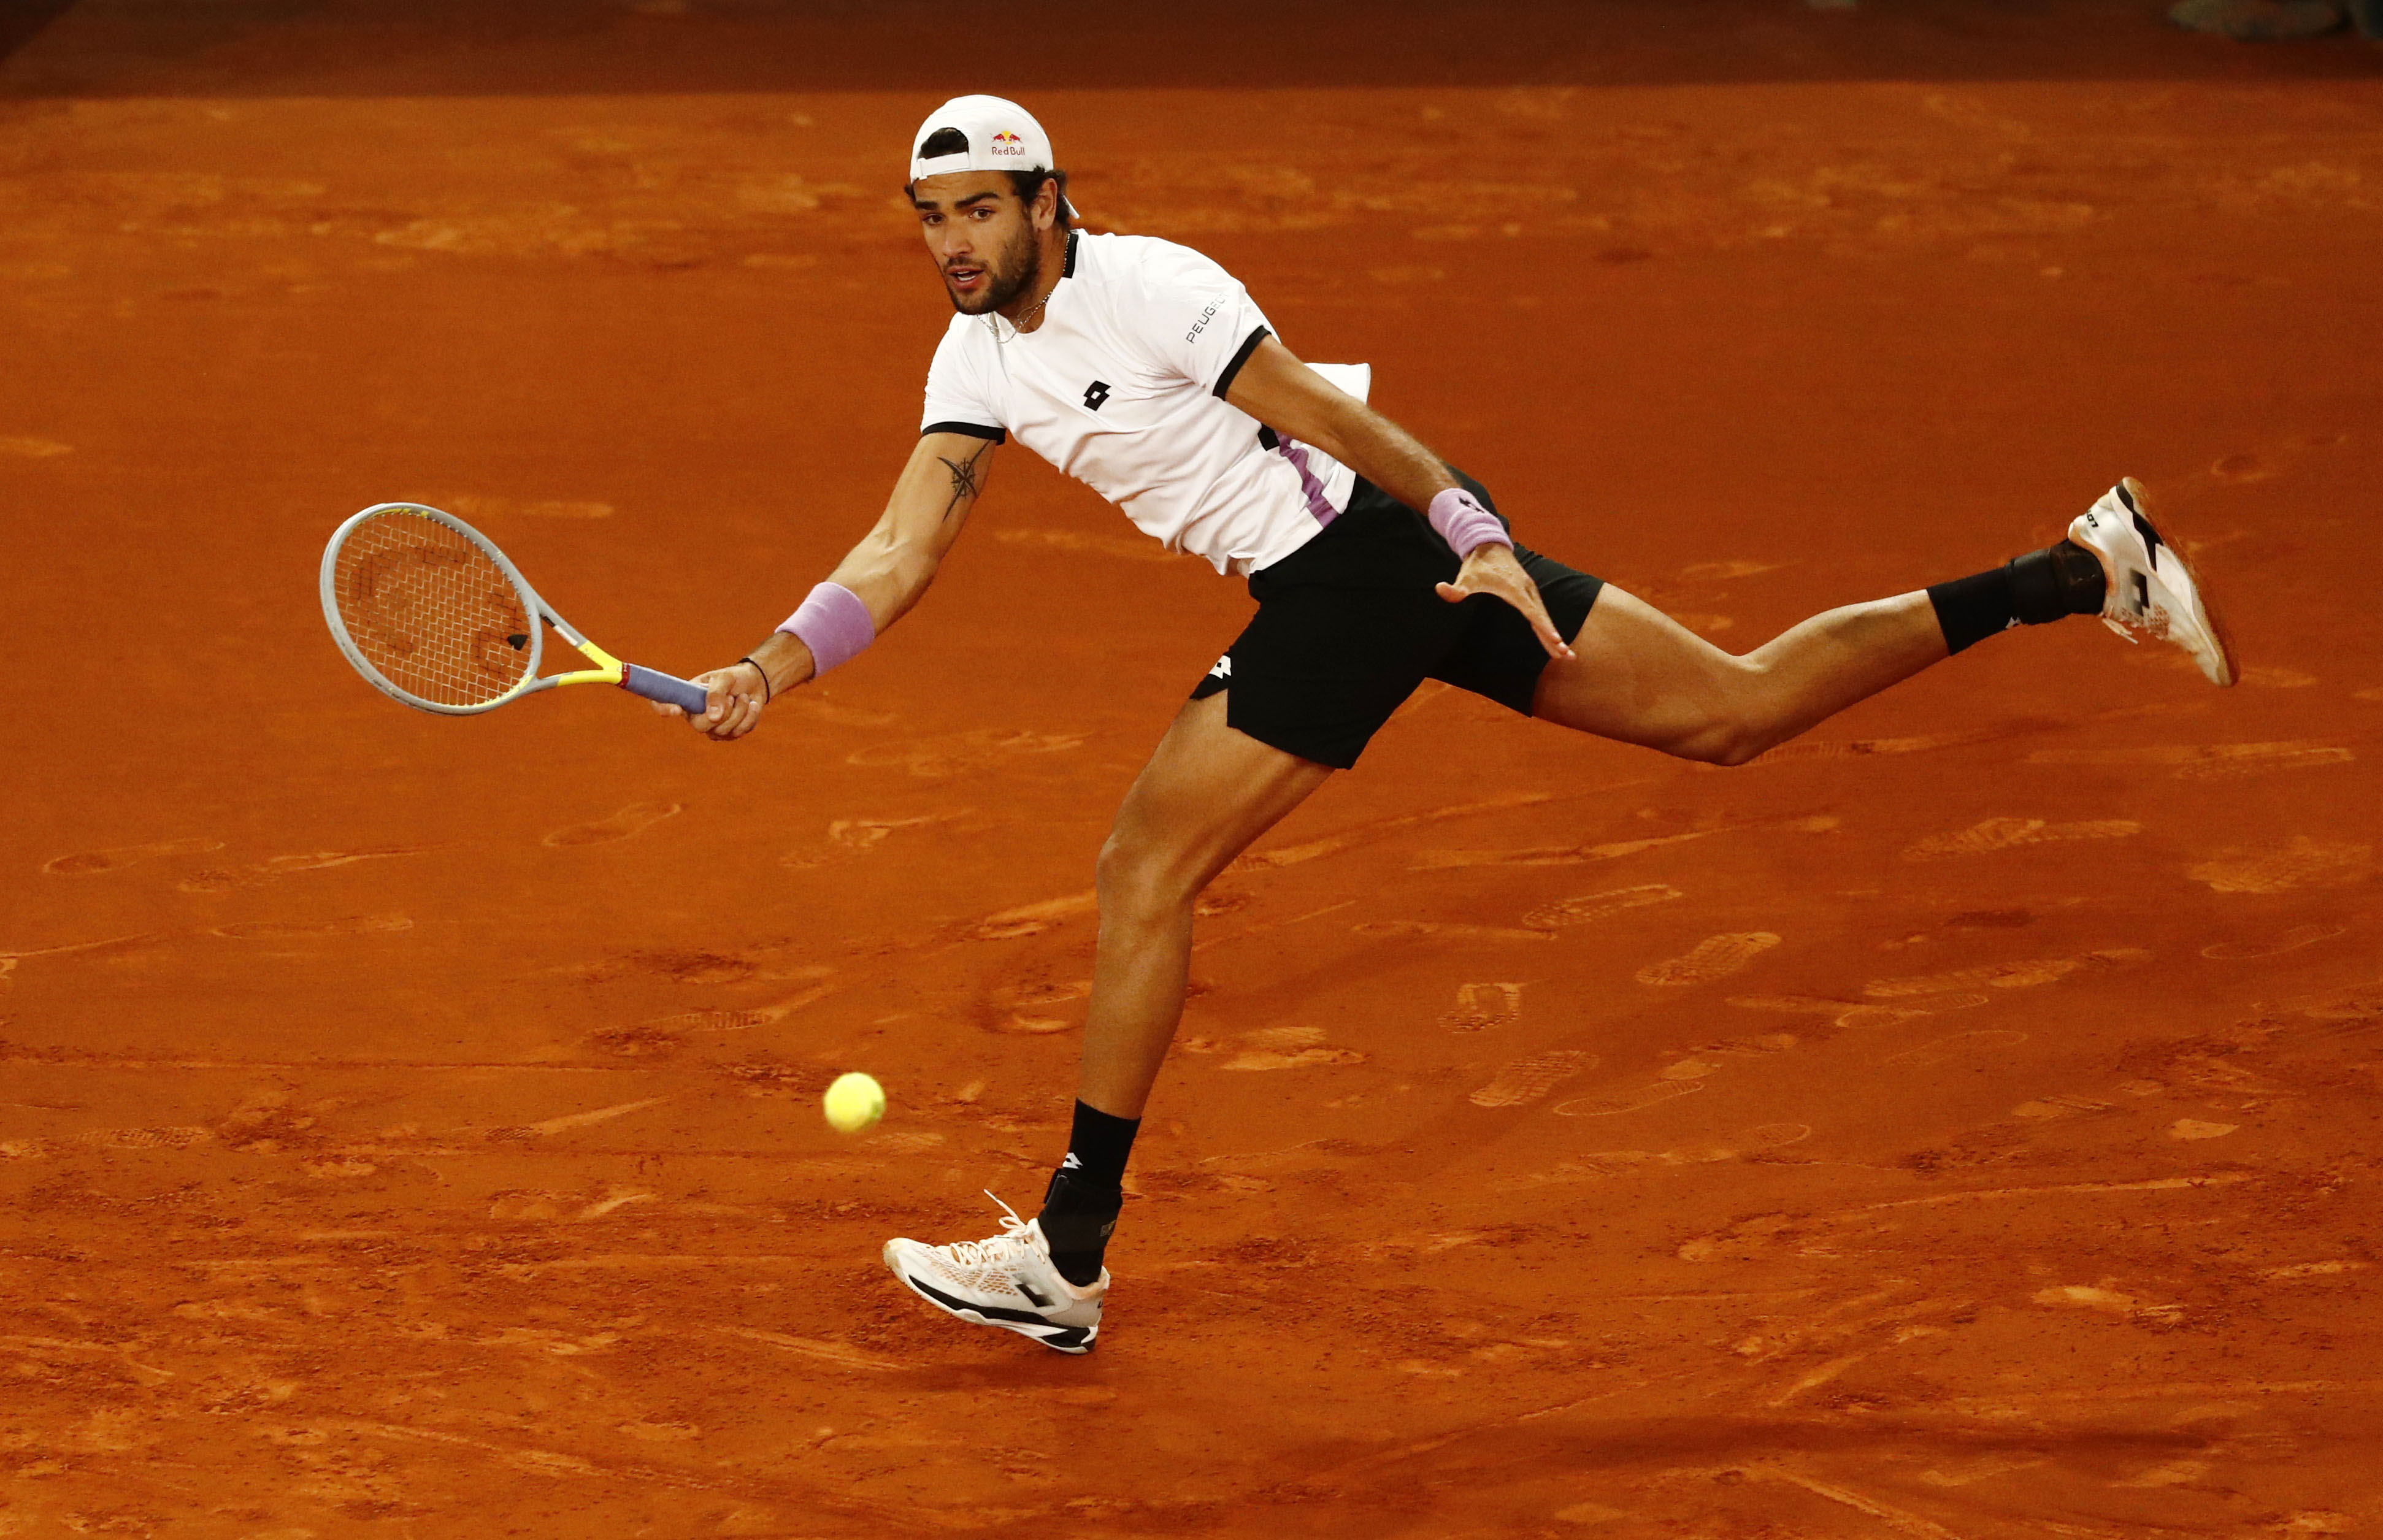 Tennis - ATP Masters 1000 - Madrid Open - Caja Magica, Madrid, Spain - May 9, 2021  Italy's Matteo Berrettini in action during his final match against Germany's Alexander Zverev REUTERS/Sergio Perez